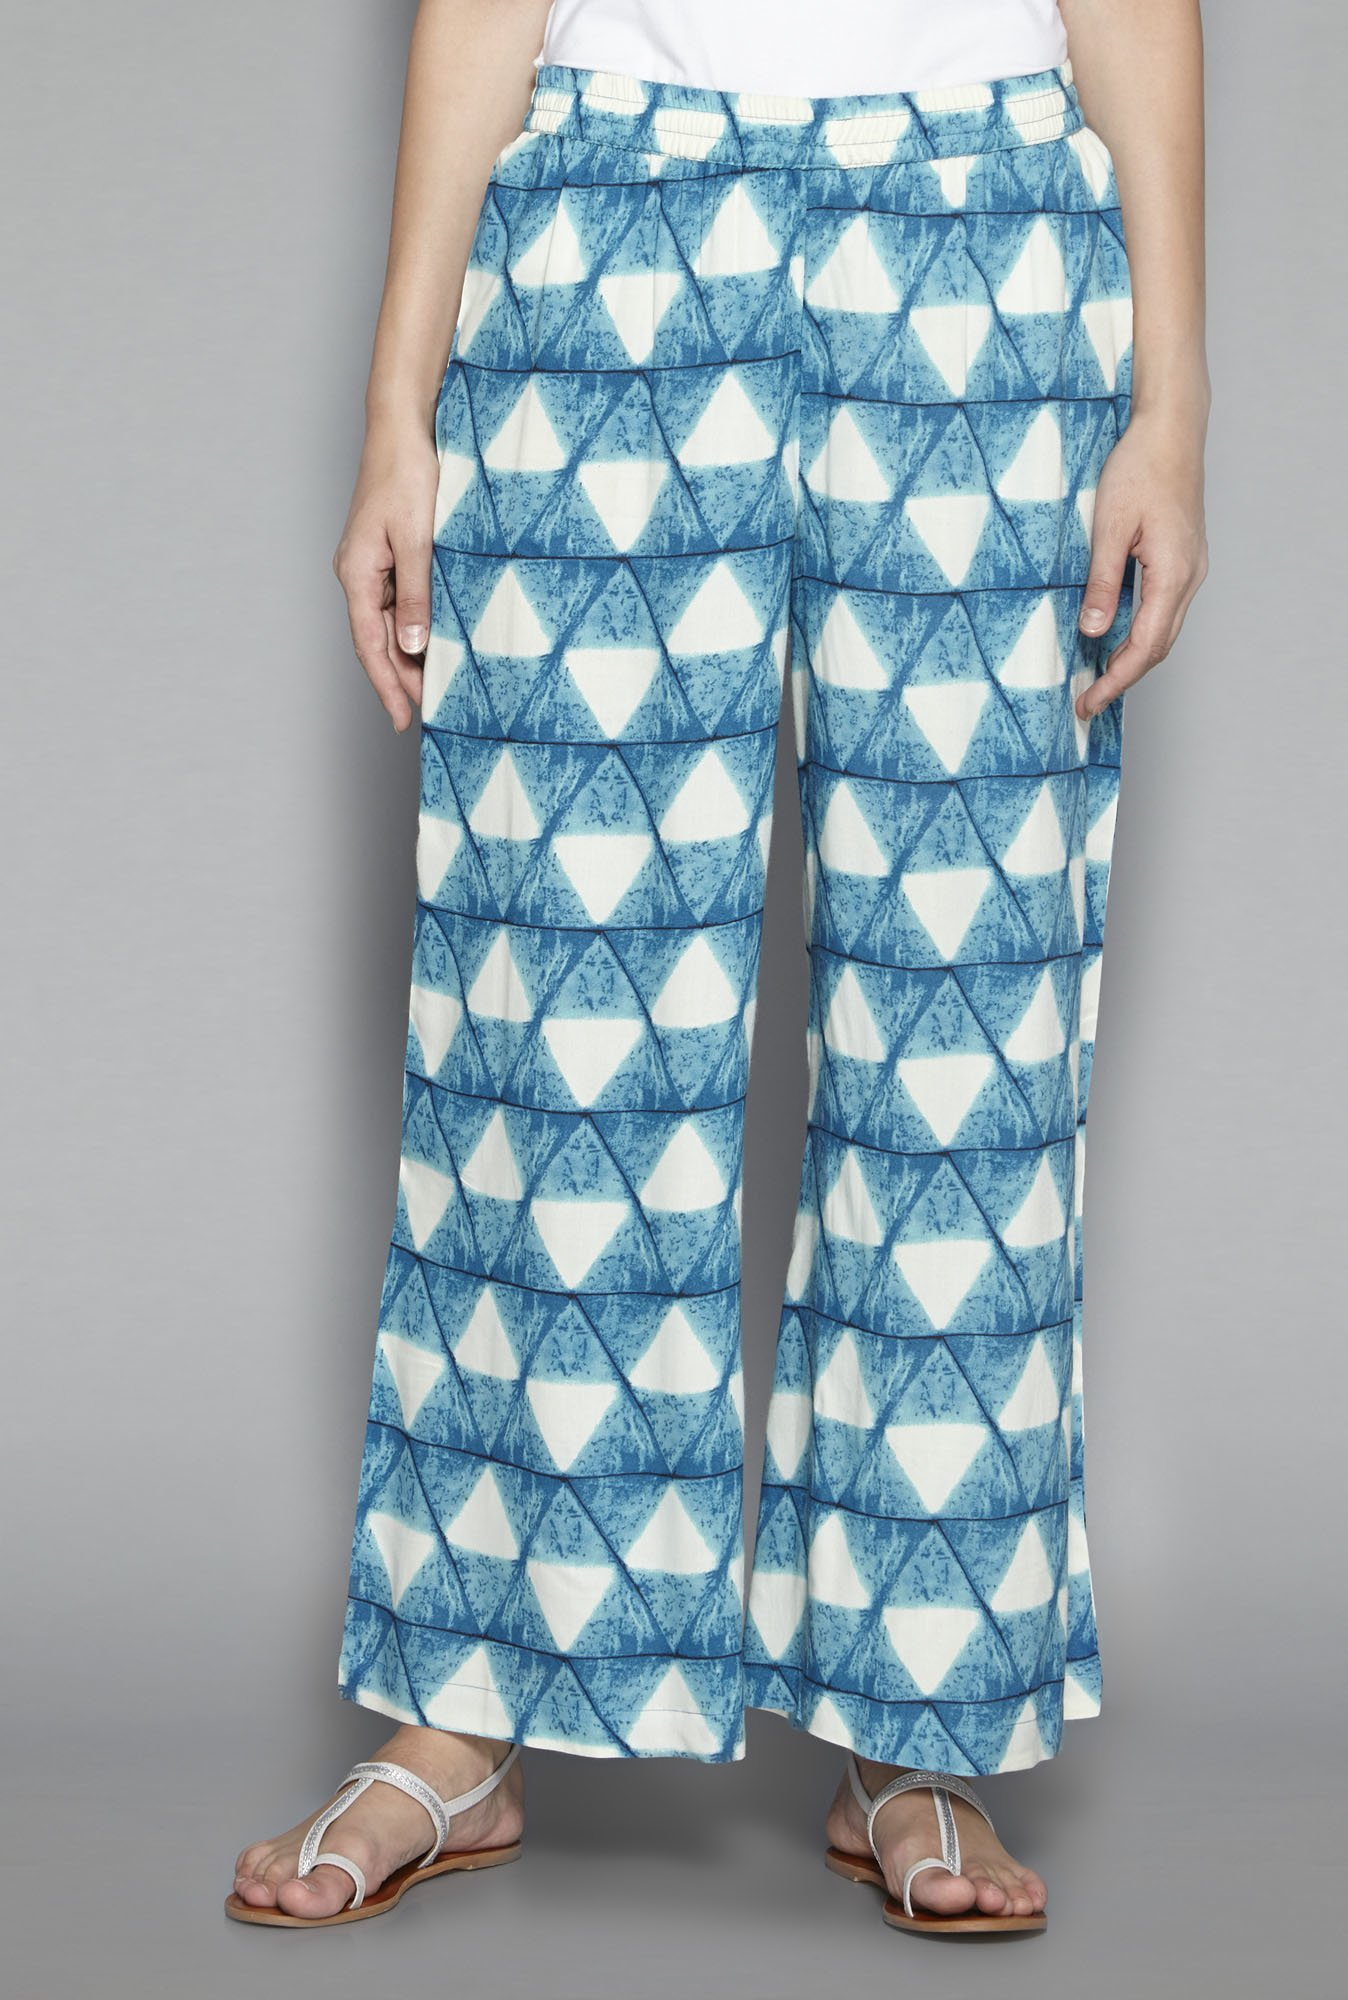 Utsa by Westside Blue Printed Palazzos